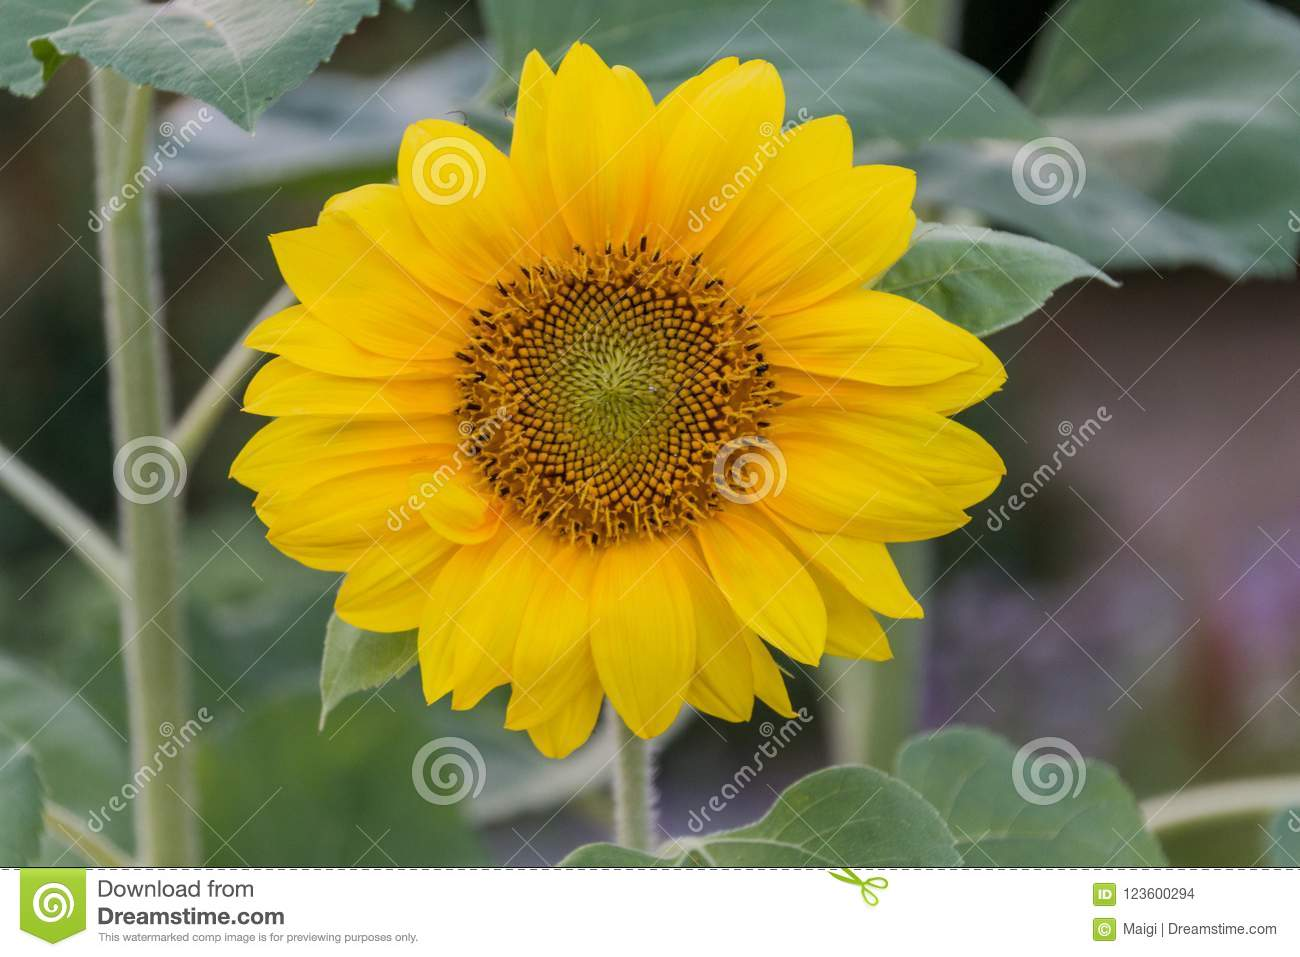 Download Close-up Of A Blooming Sunflower Stock Photo - Image of garden, large: 123600294